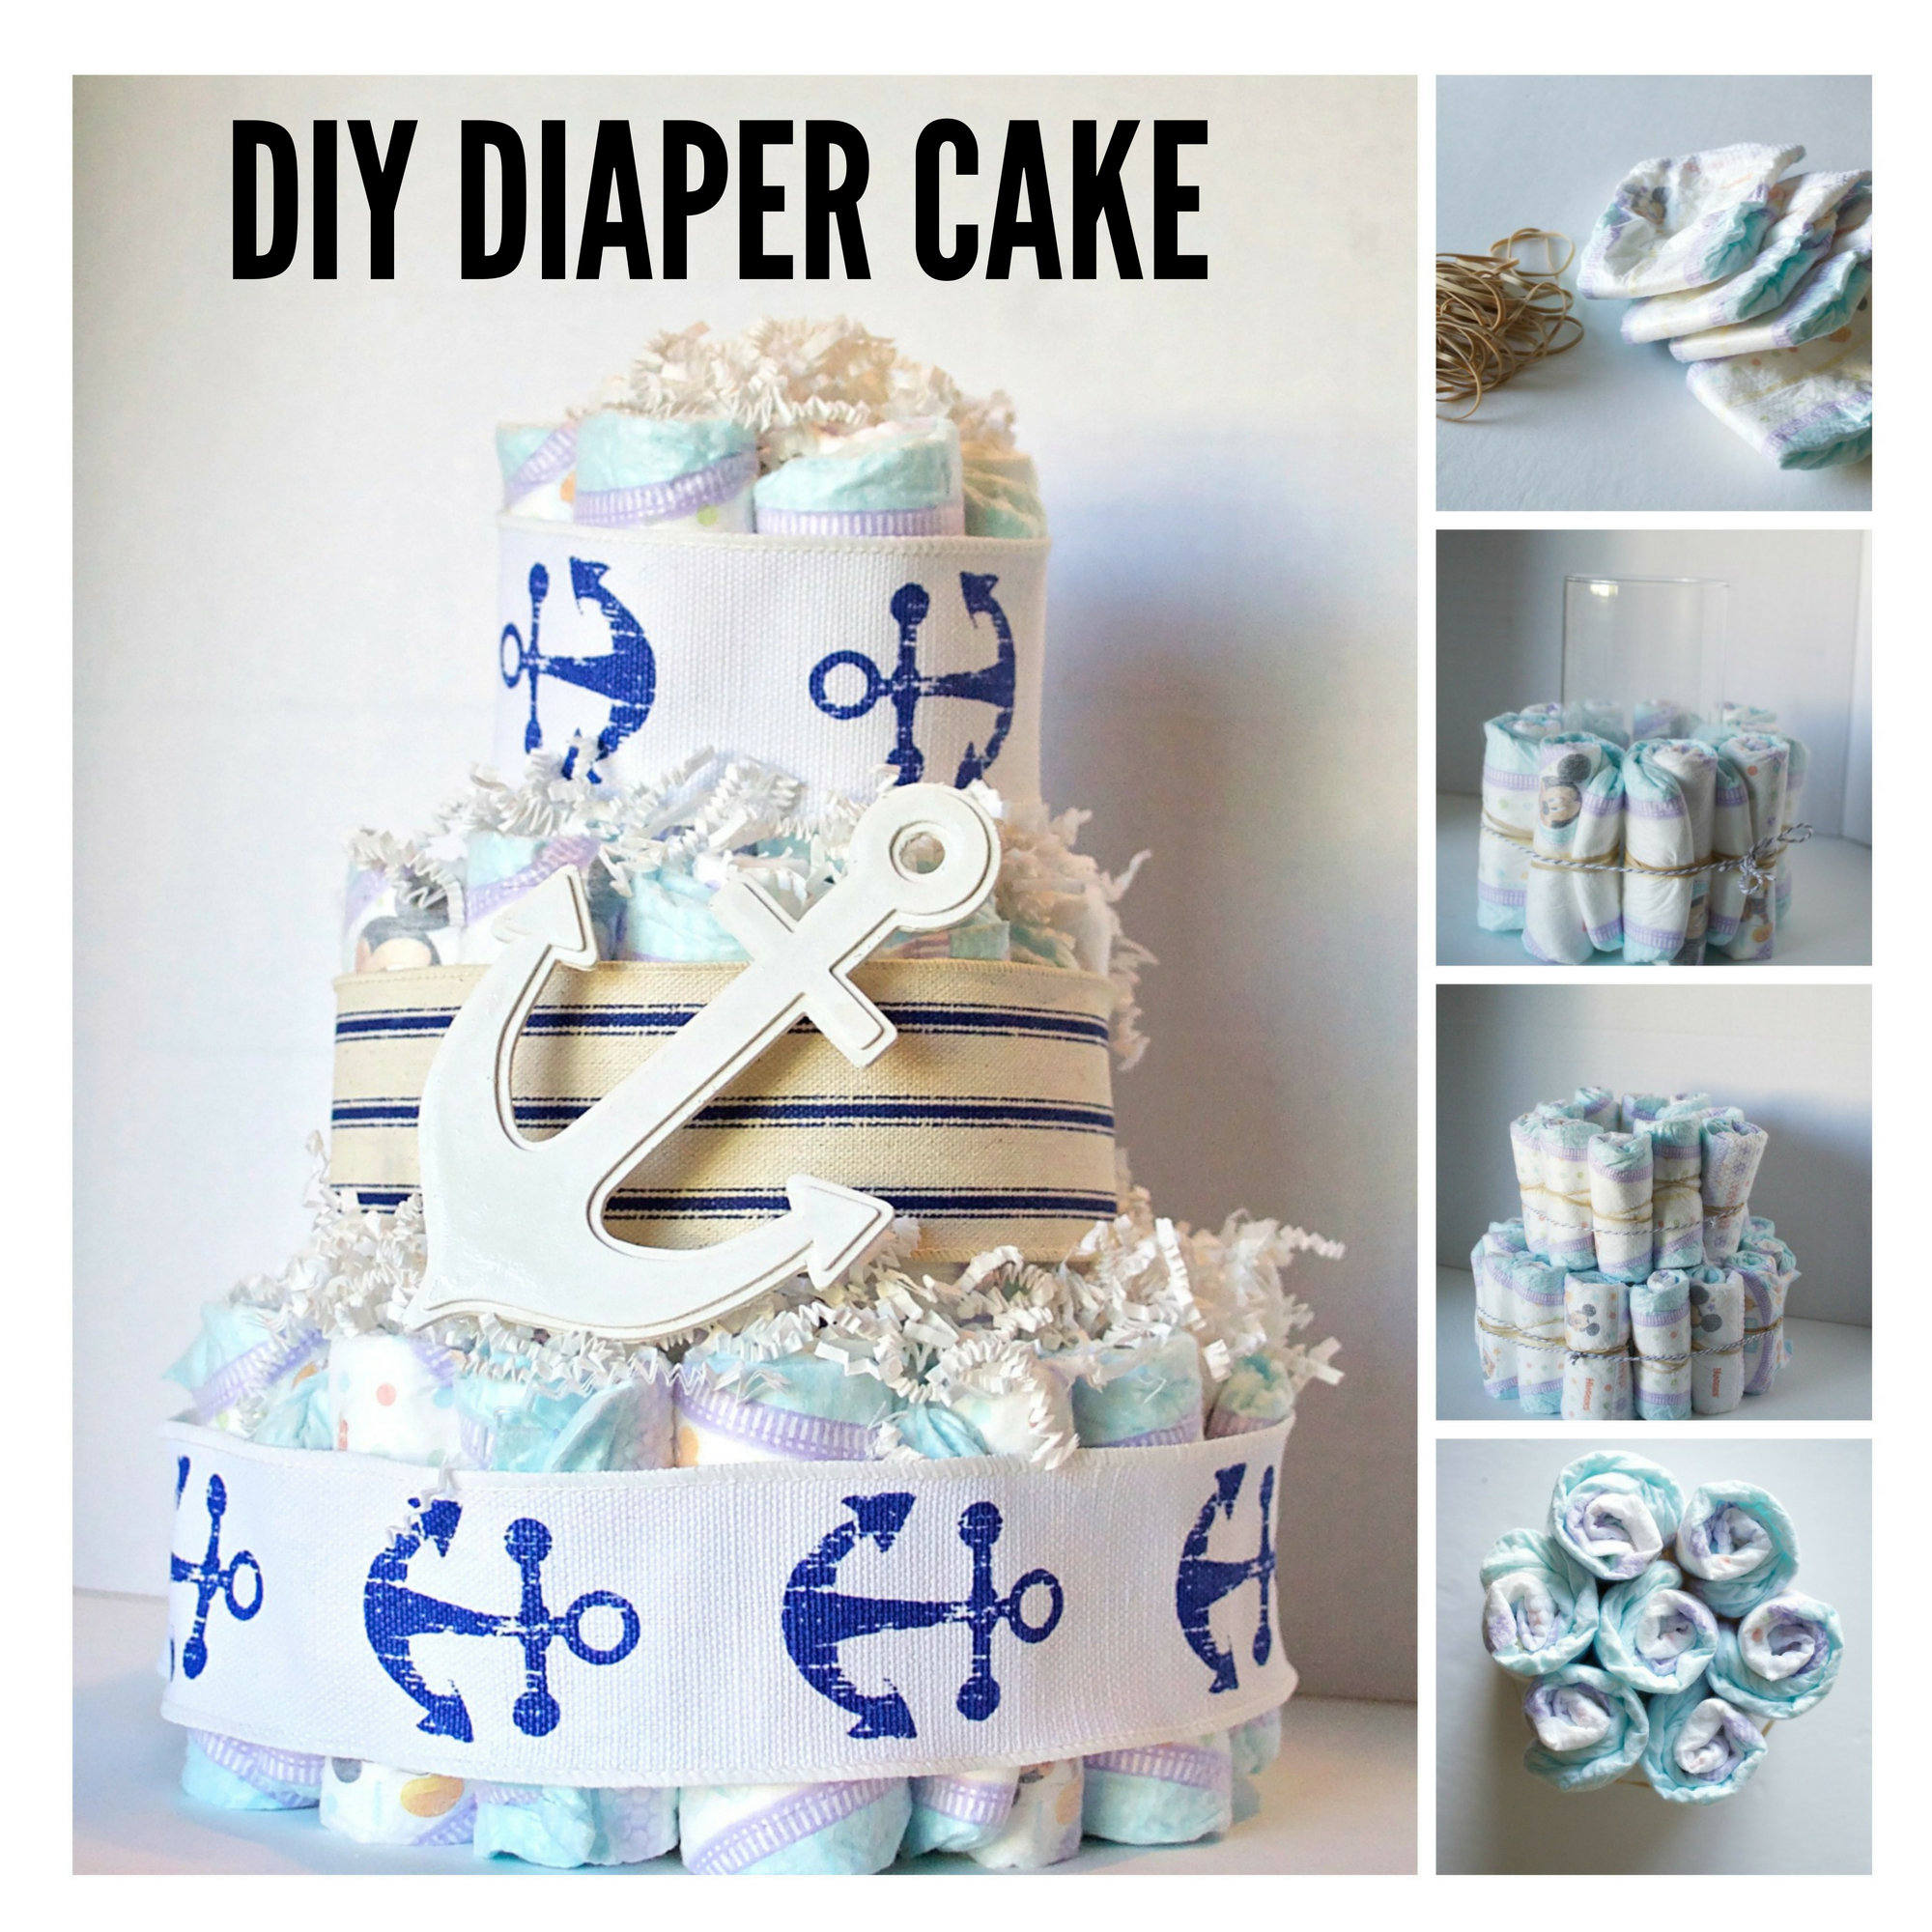 DIY Diaper baby shower gifts. #SuperAbsorbent #CollectiveBias #ad | Creative Things to Make With Diapers by popular Utah lifestyle blogger, Kara Metta: collage image of how to make a diaper cake.